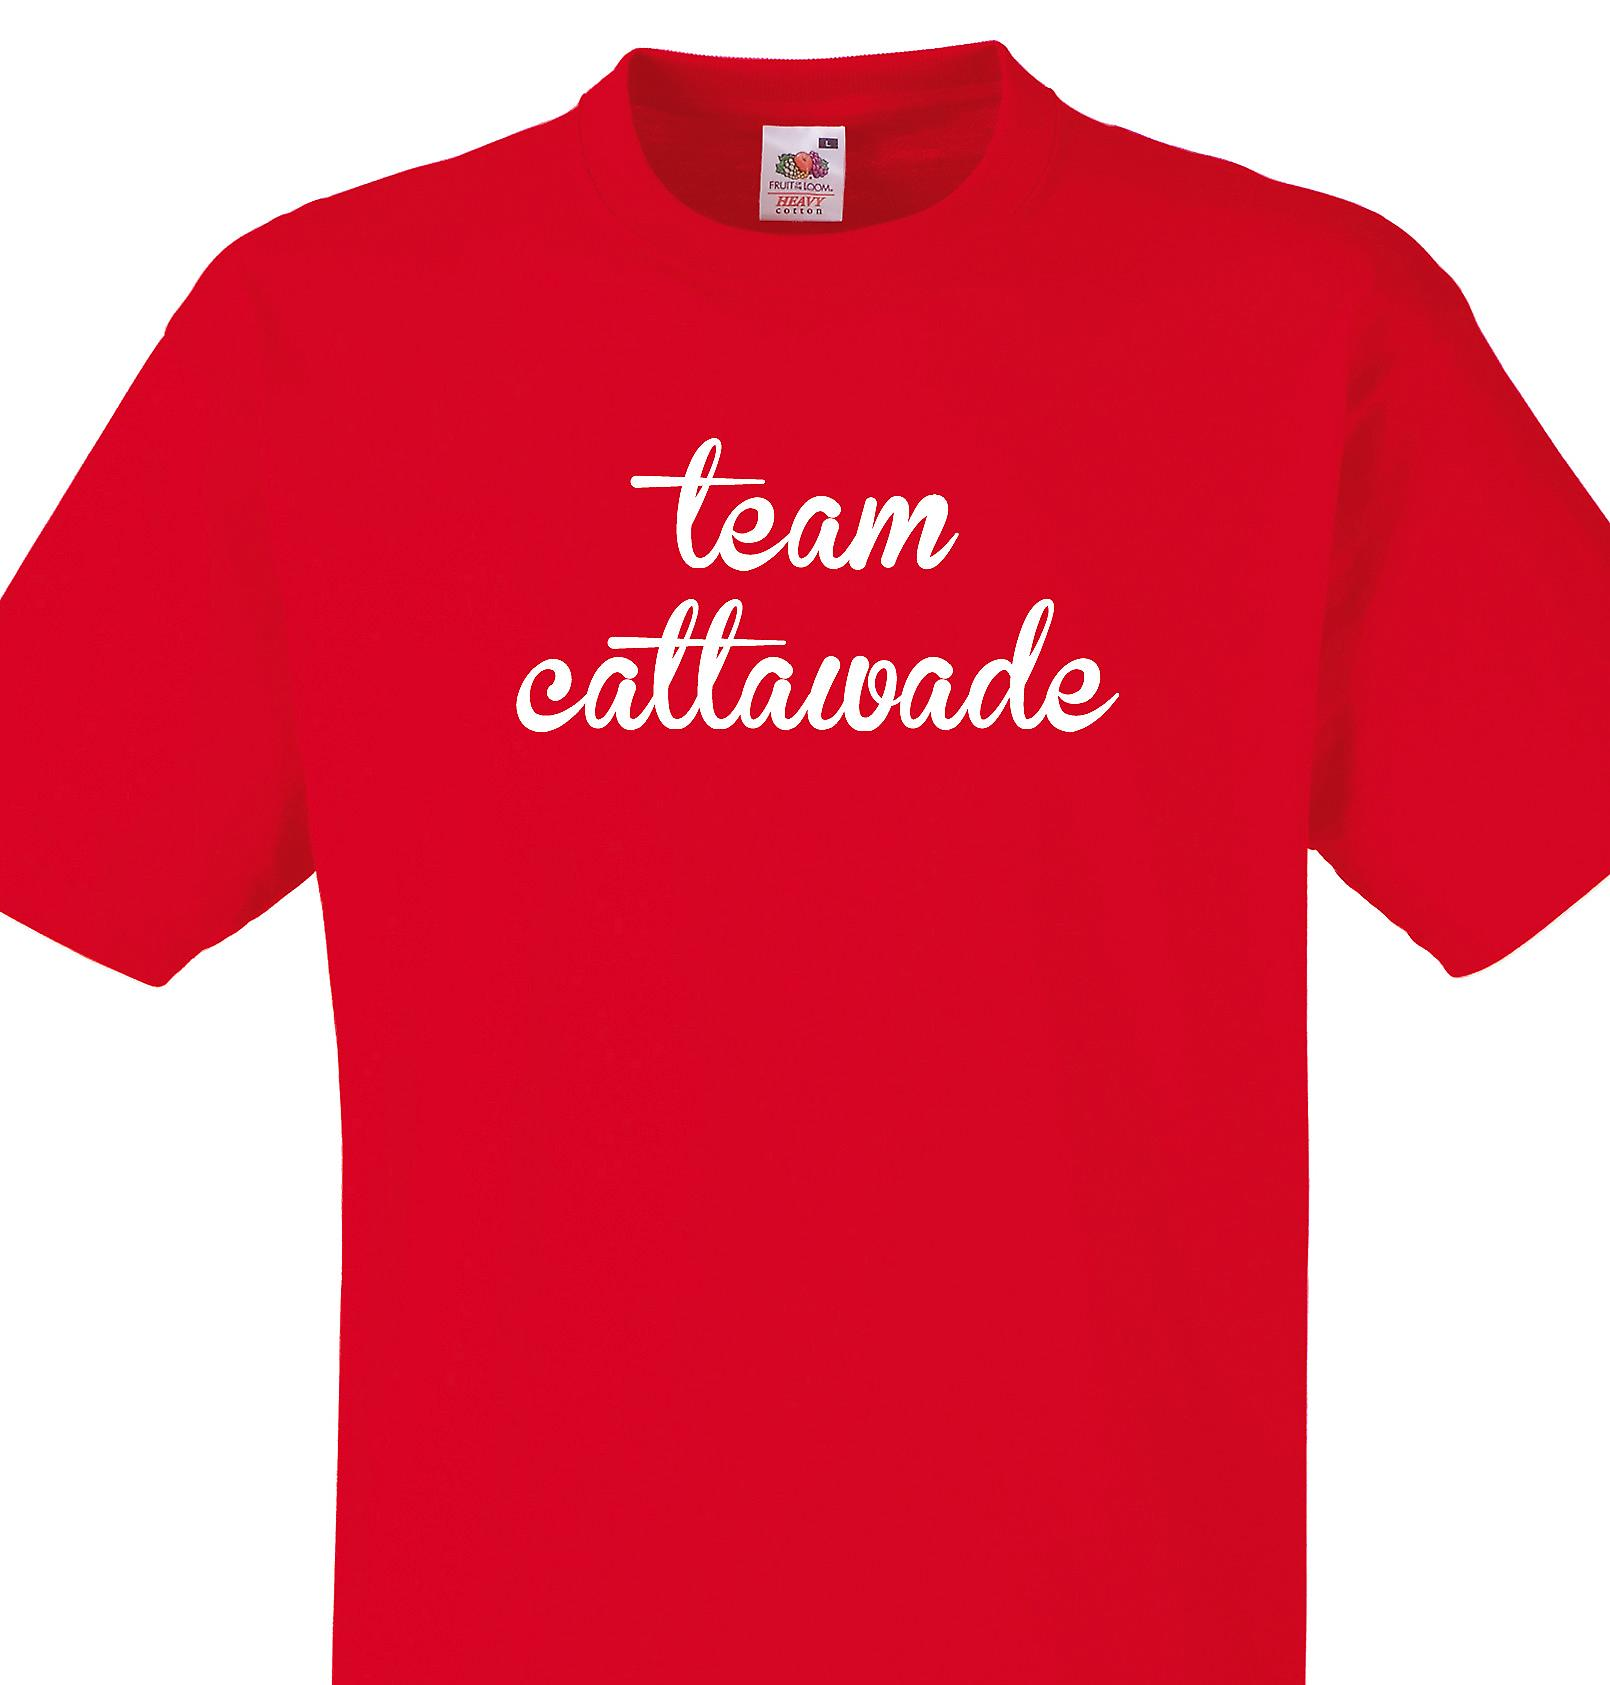 Team Cattawade Red T shirt